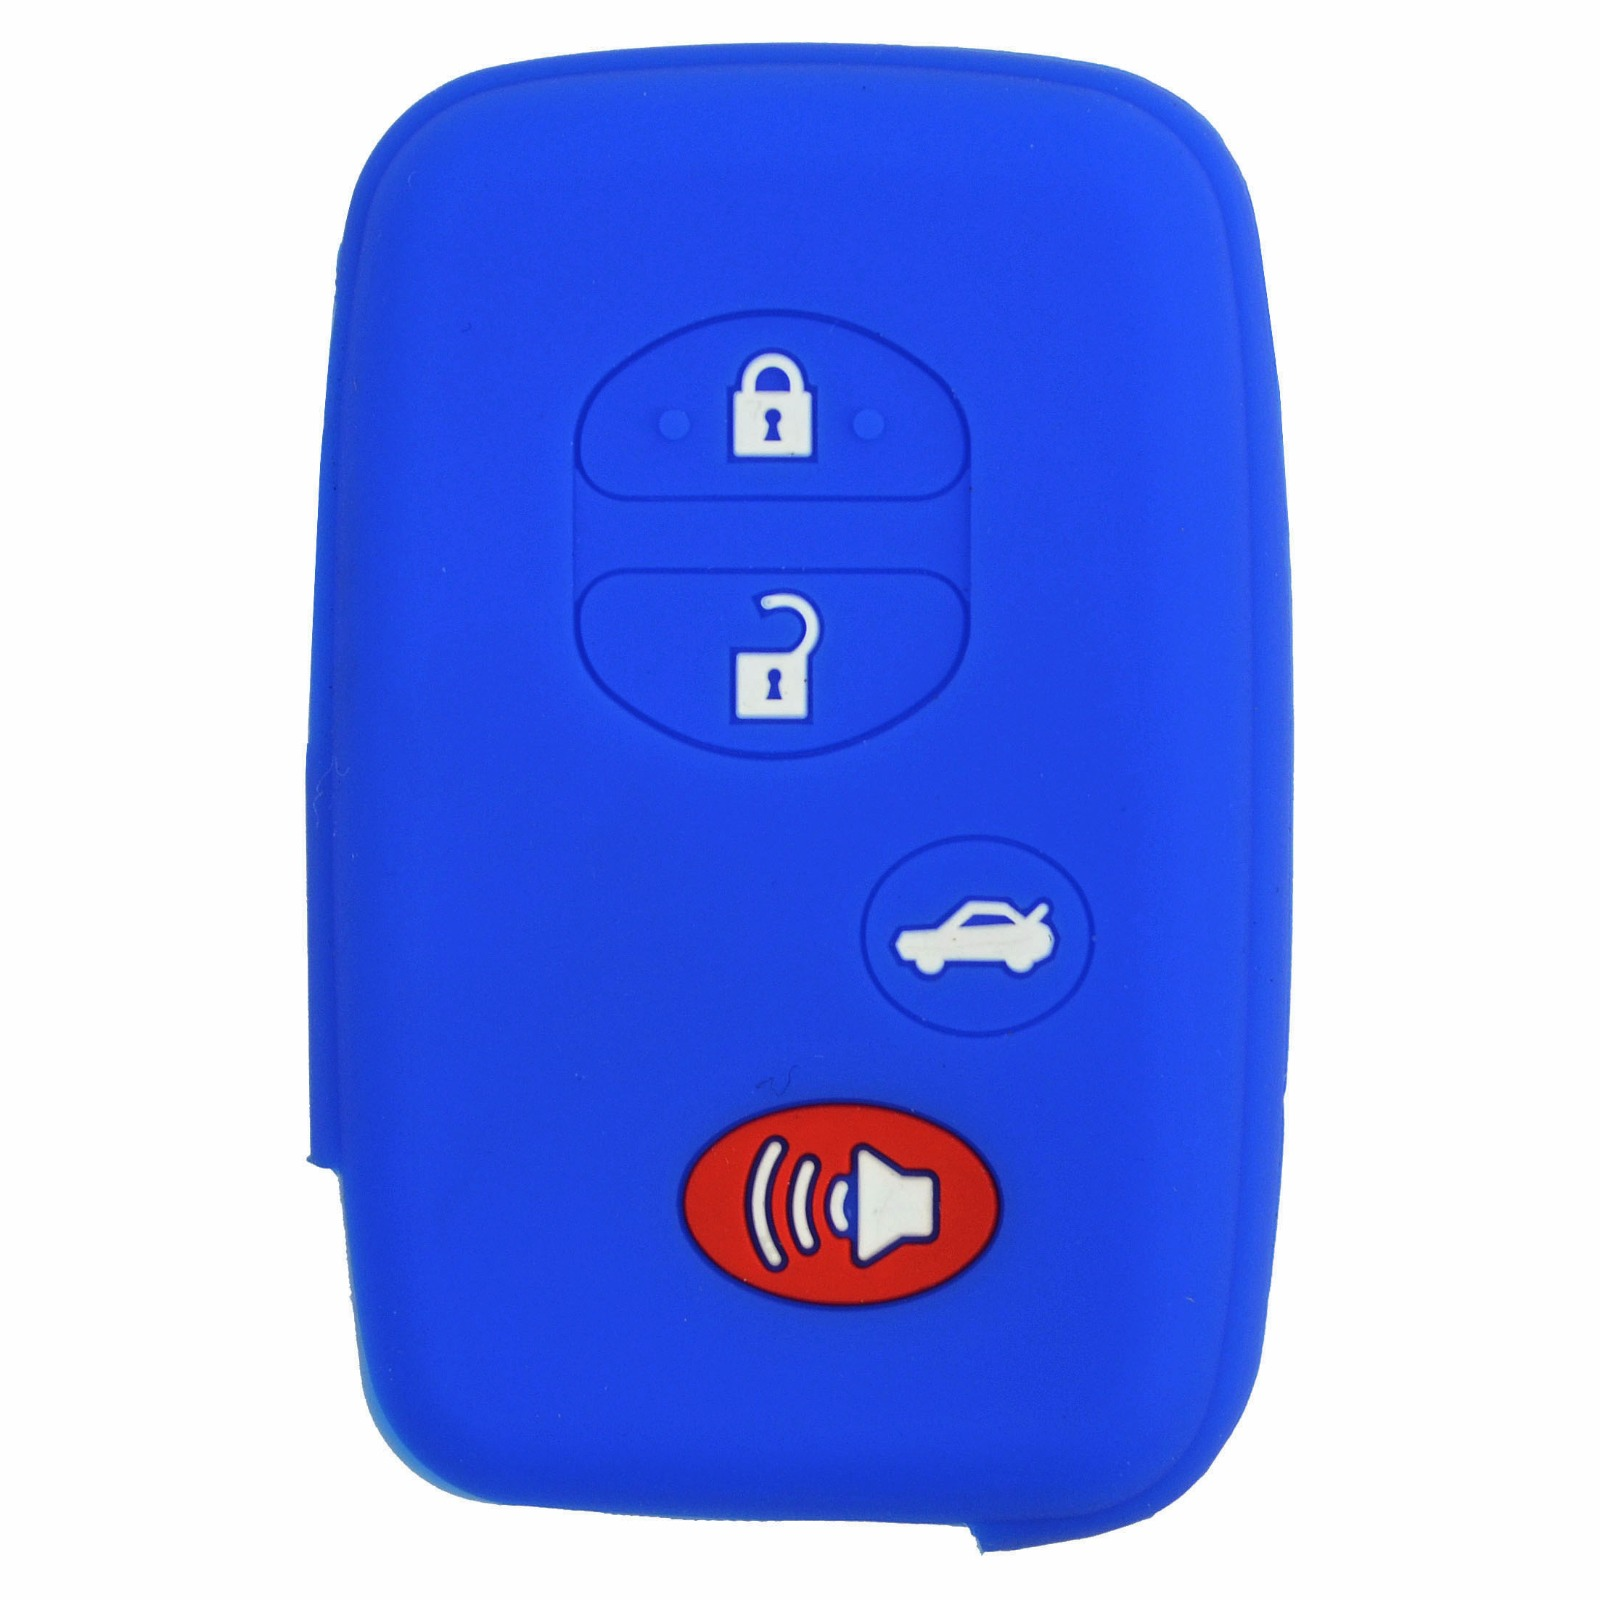 HYQ14AEM HYQ14ACX QualityKeylessPlus Replacement Case for a Lexus 4 Button Remote FCC IDs HYQ14AAB